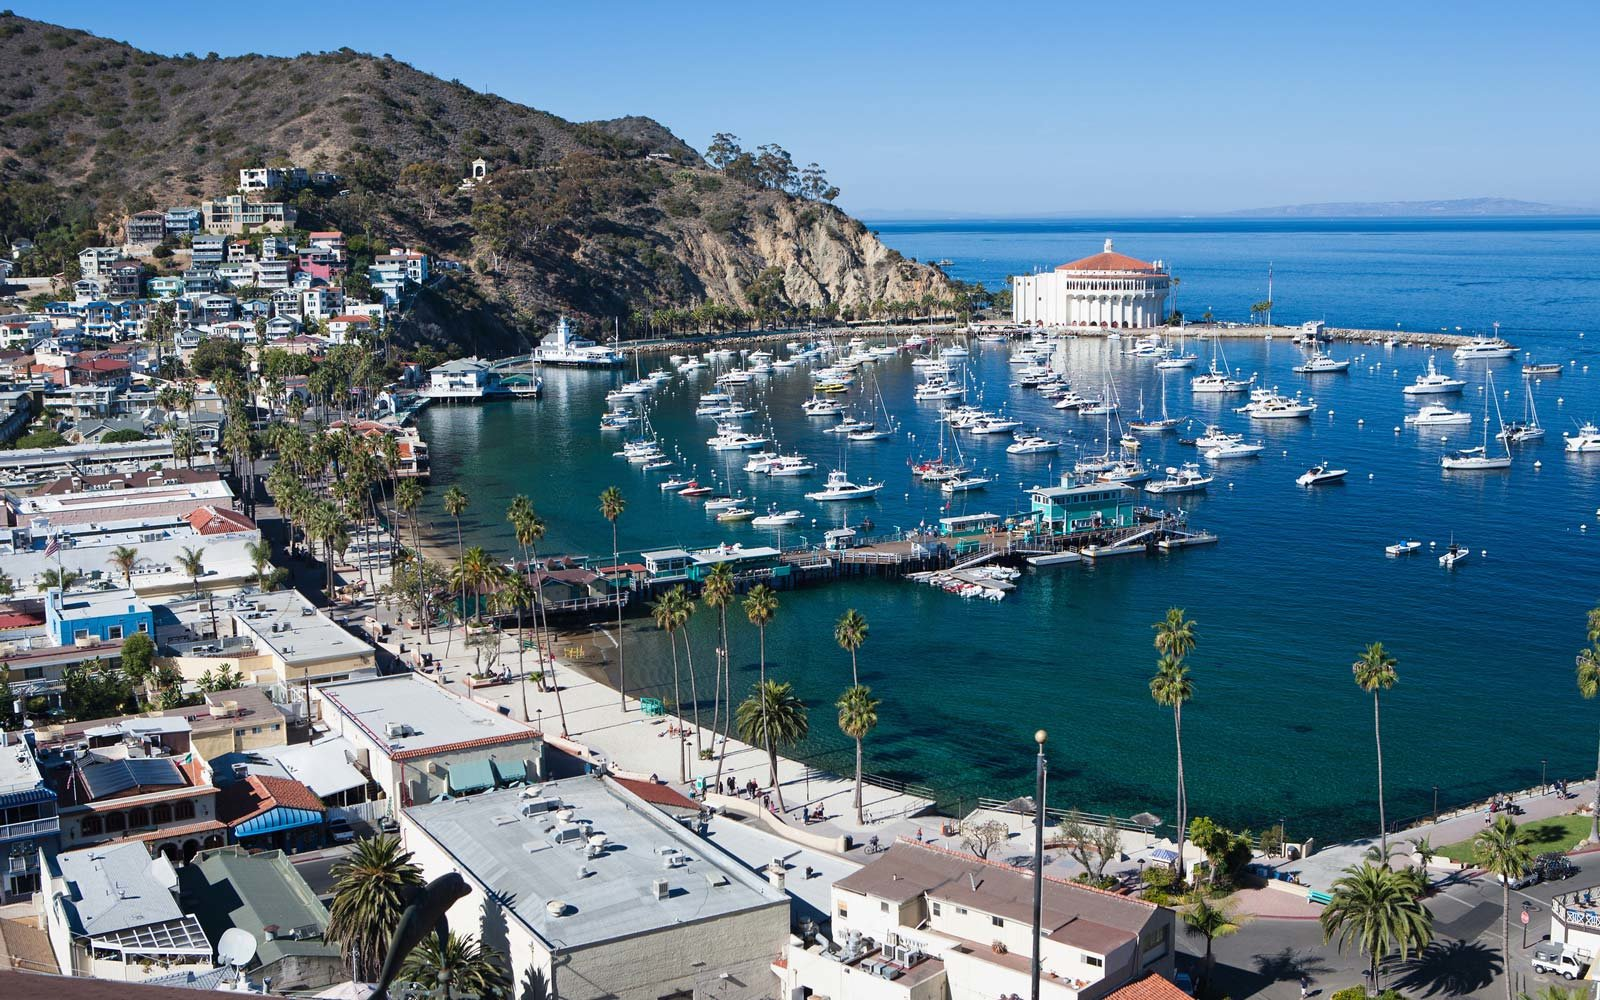 catalina-island-california-pacific-GIRLWORLD0817.jpg